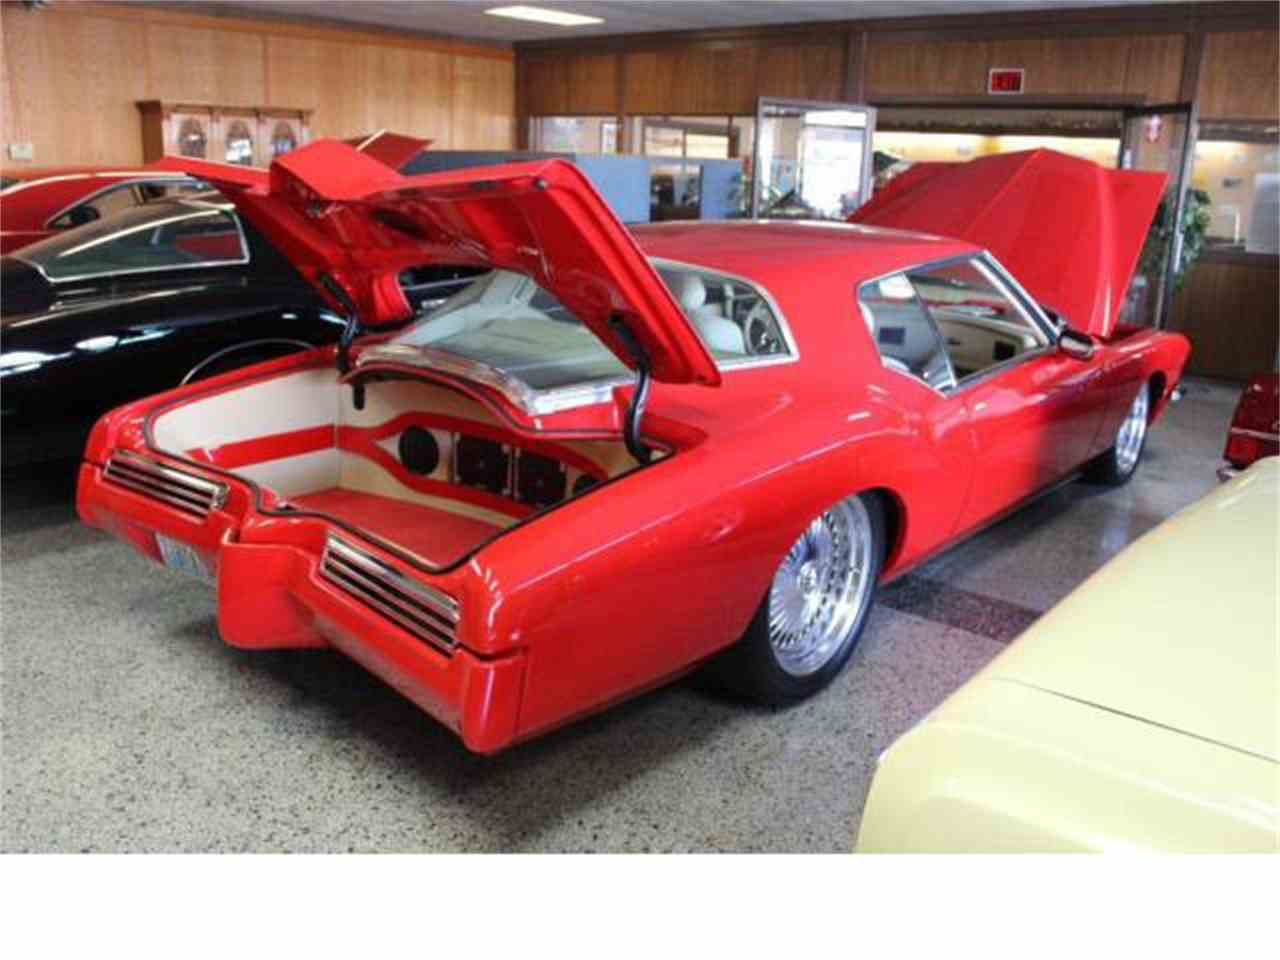 Large Picture of '71 Riviera located in Tacoma Washington Auction Vehicle - M5PM